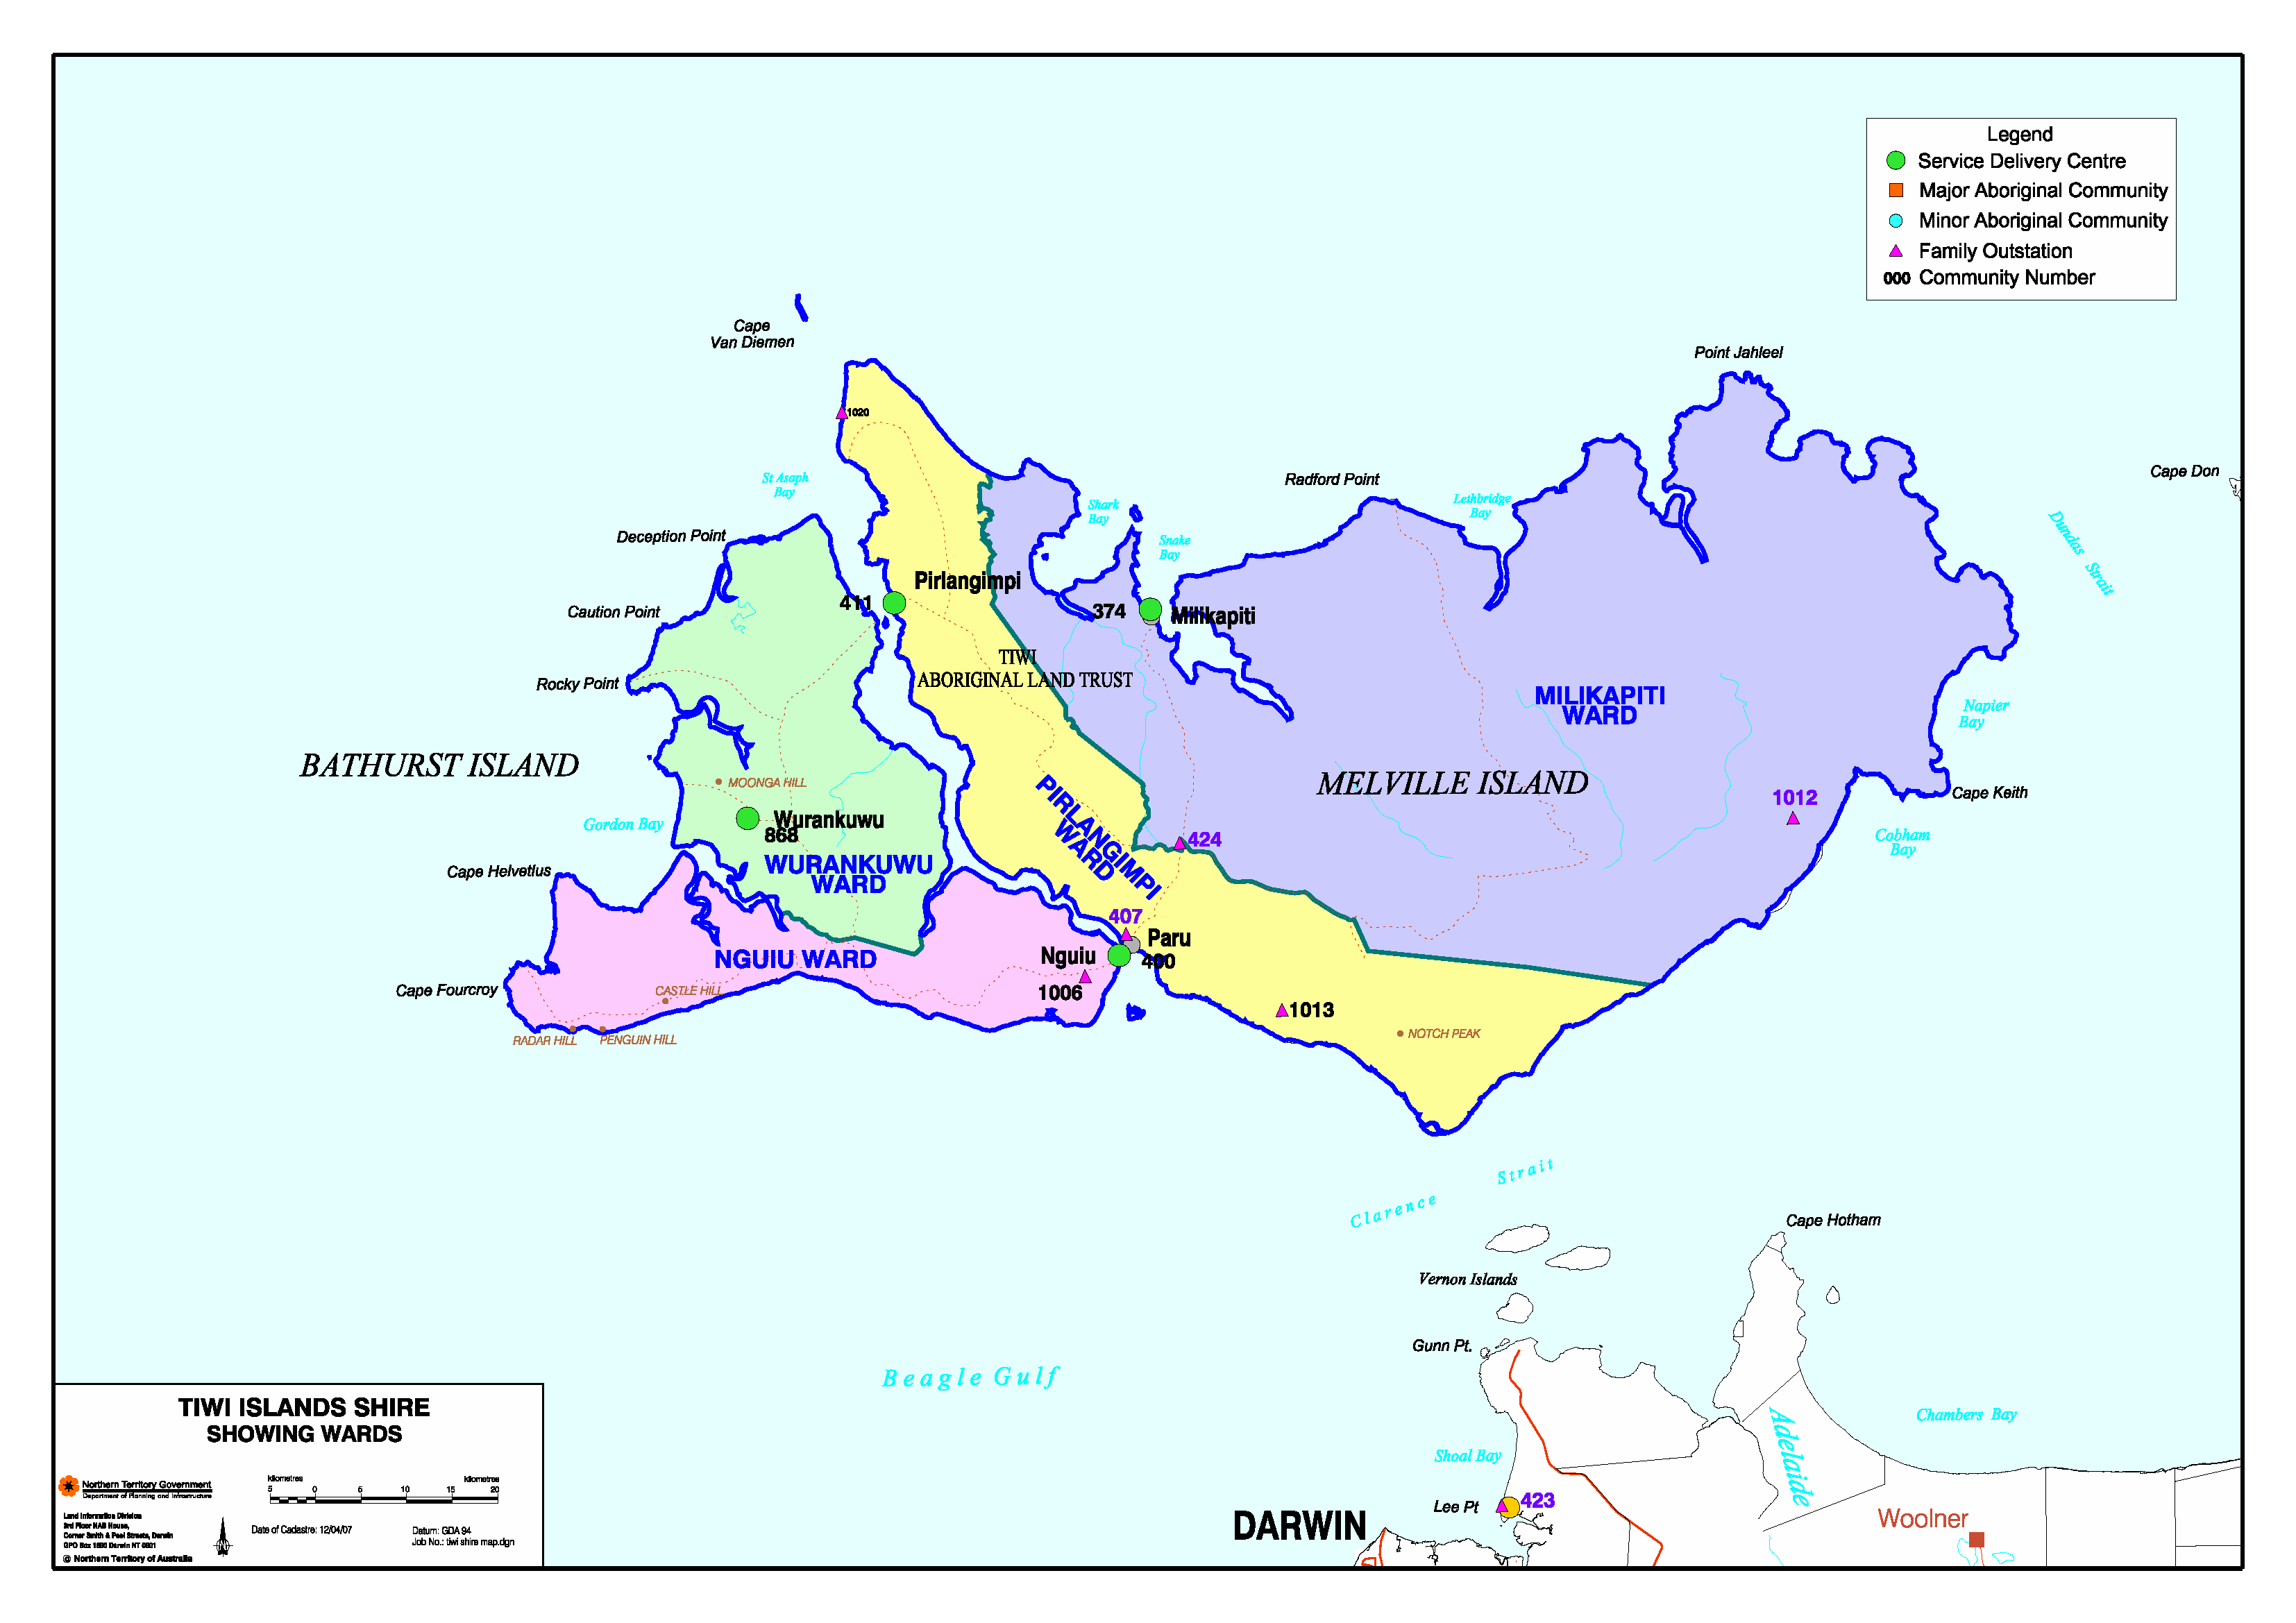 Map of Tiwi Islands Regional Council showing electoral wards